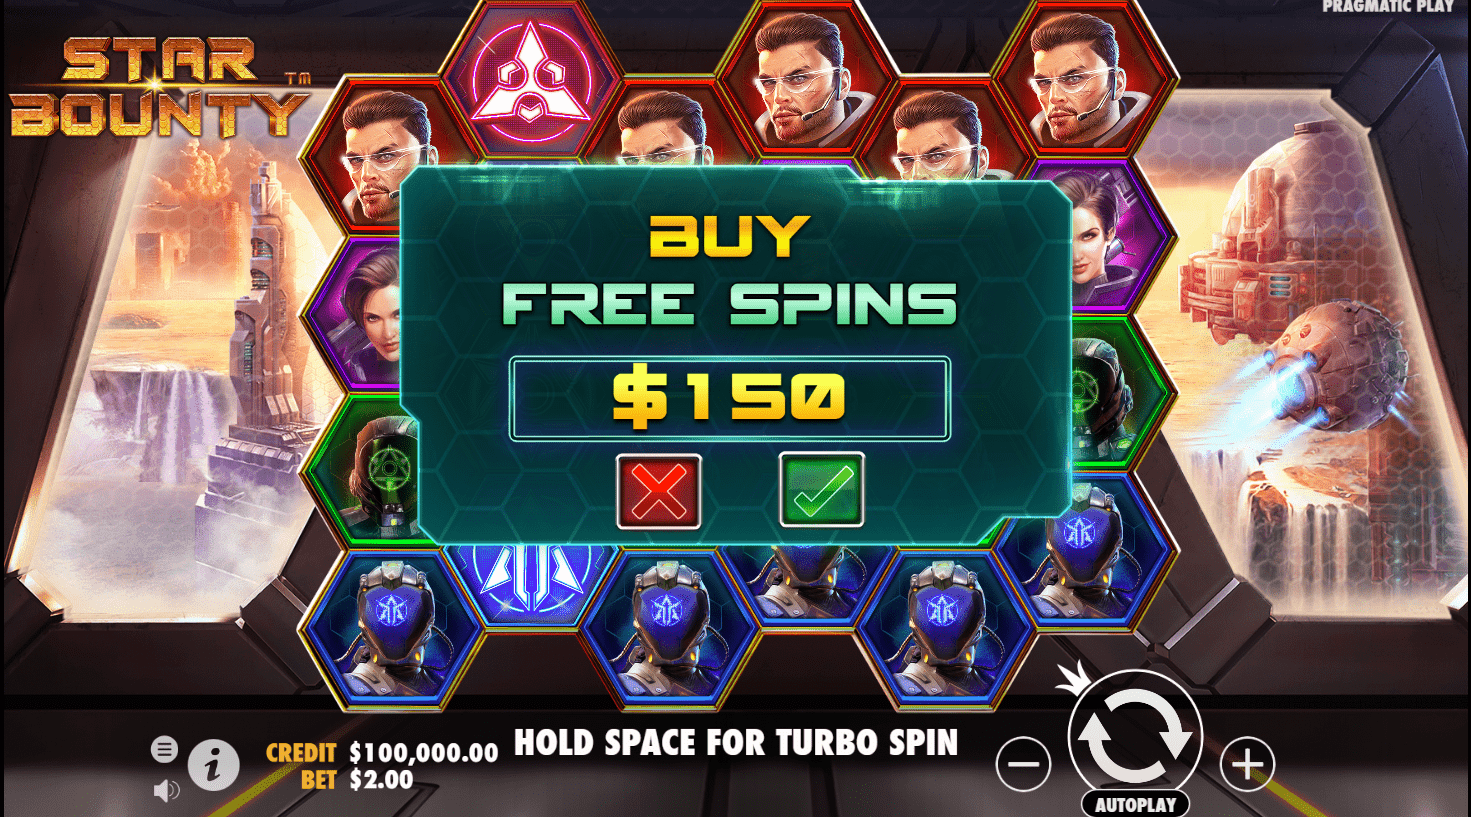 Star bounty - slot game - buy free spins